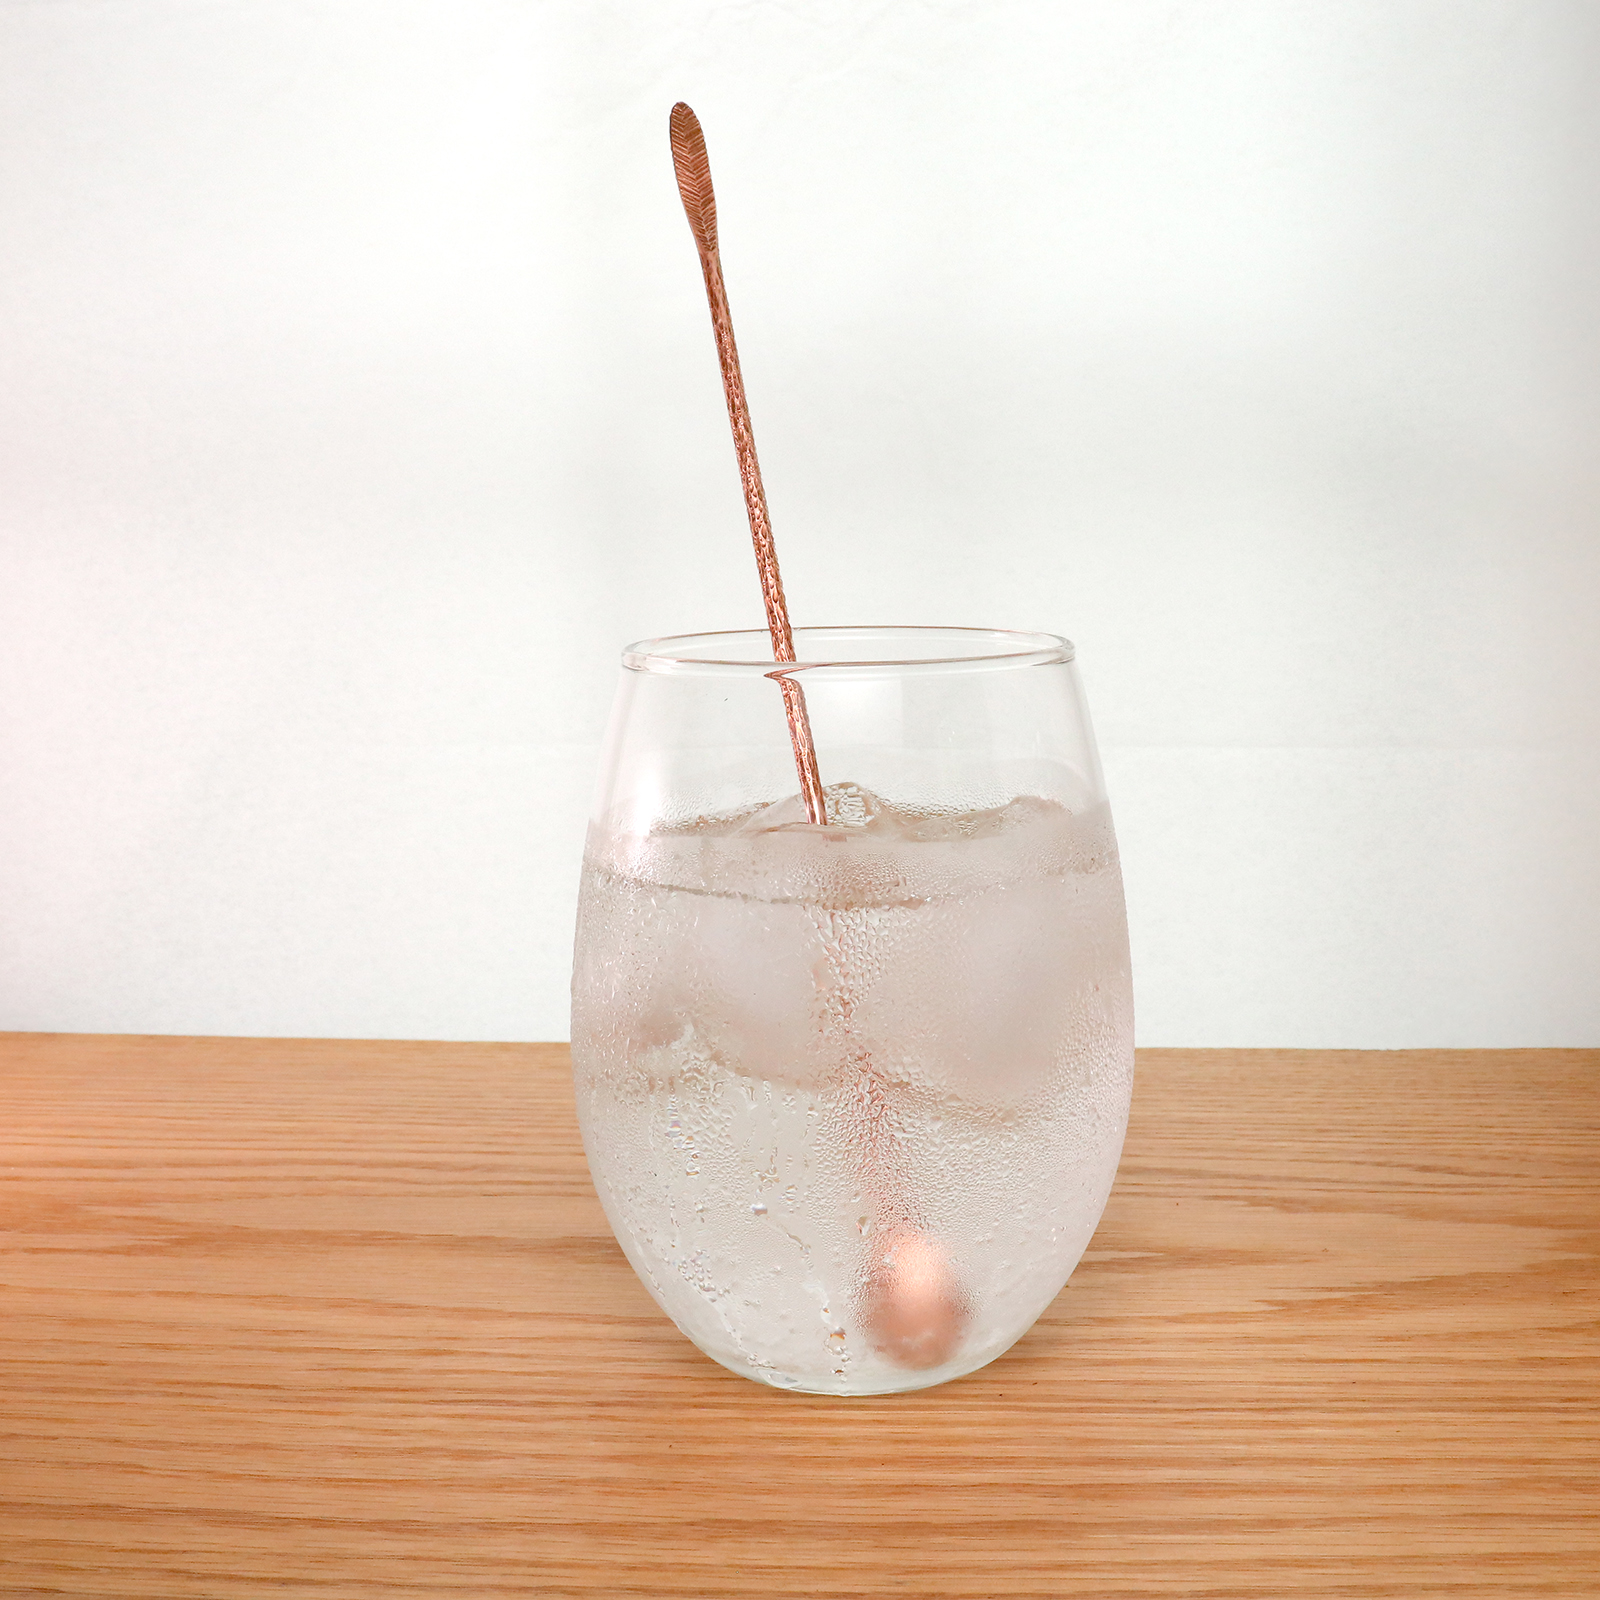 Stirrer in Glass